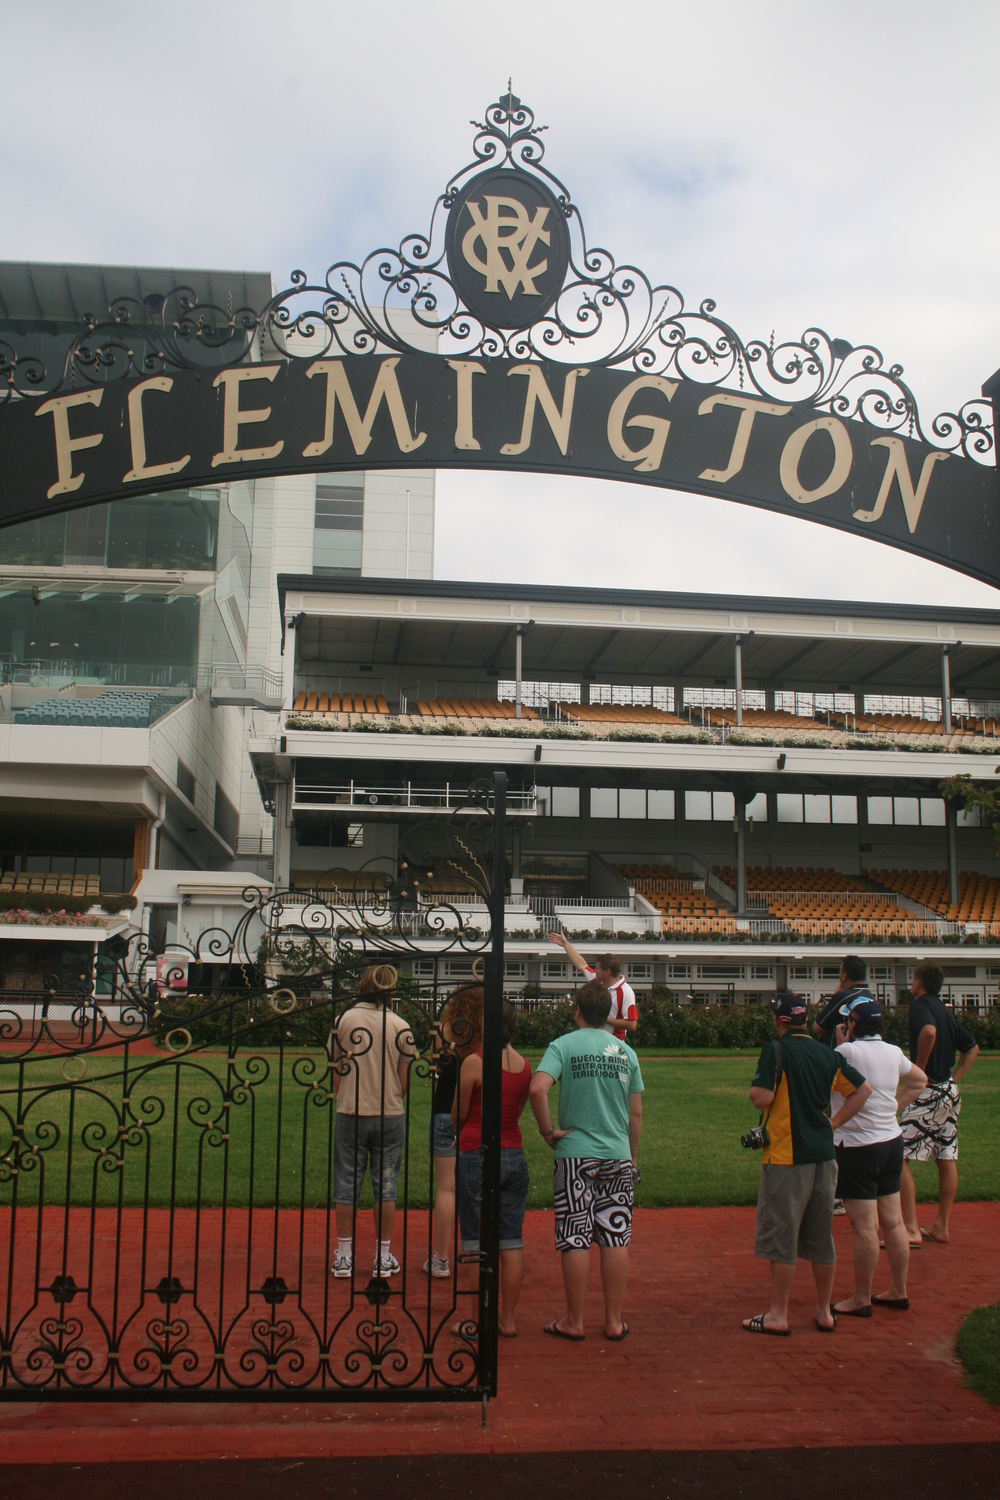 Flemington Feb 09 on tour 2.jpg